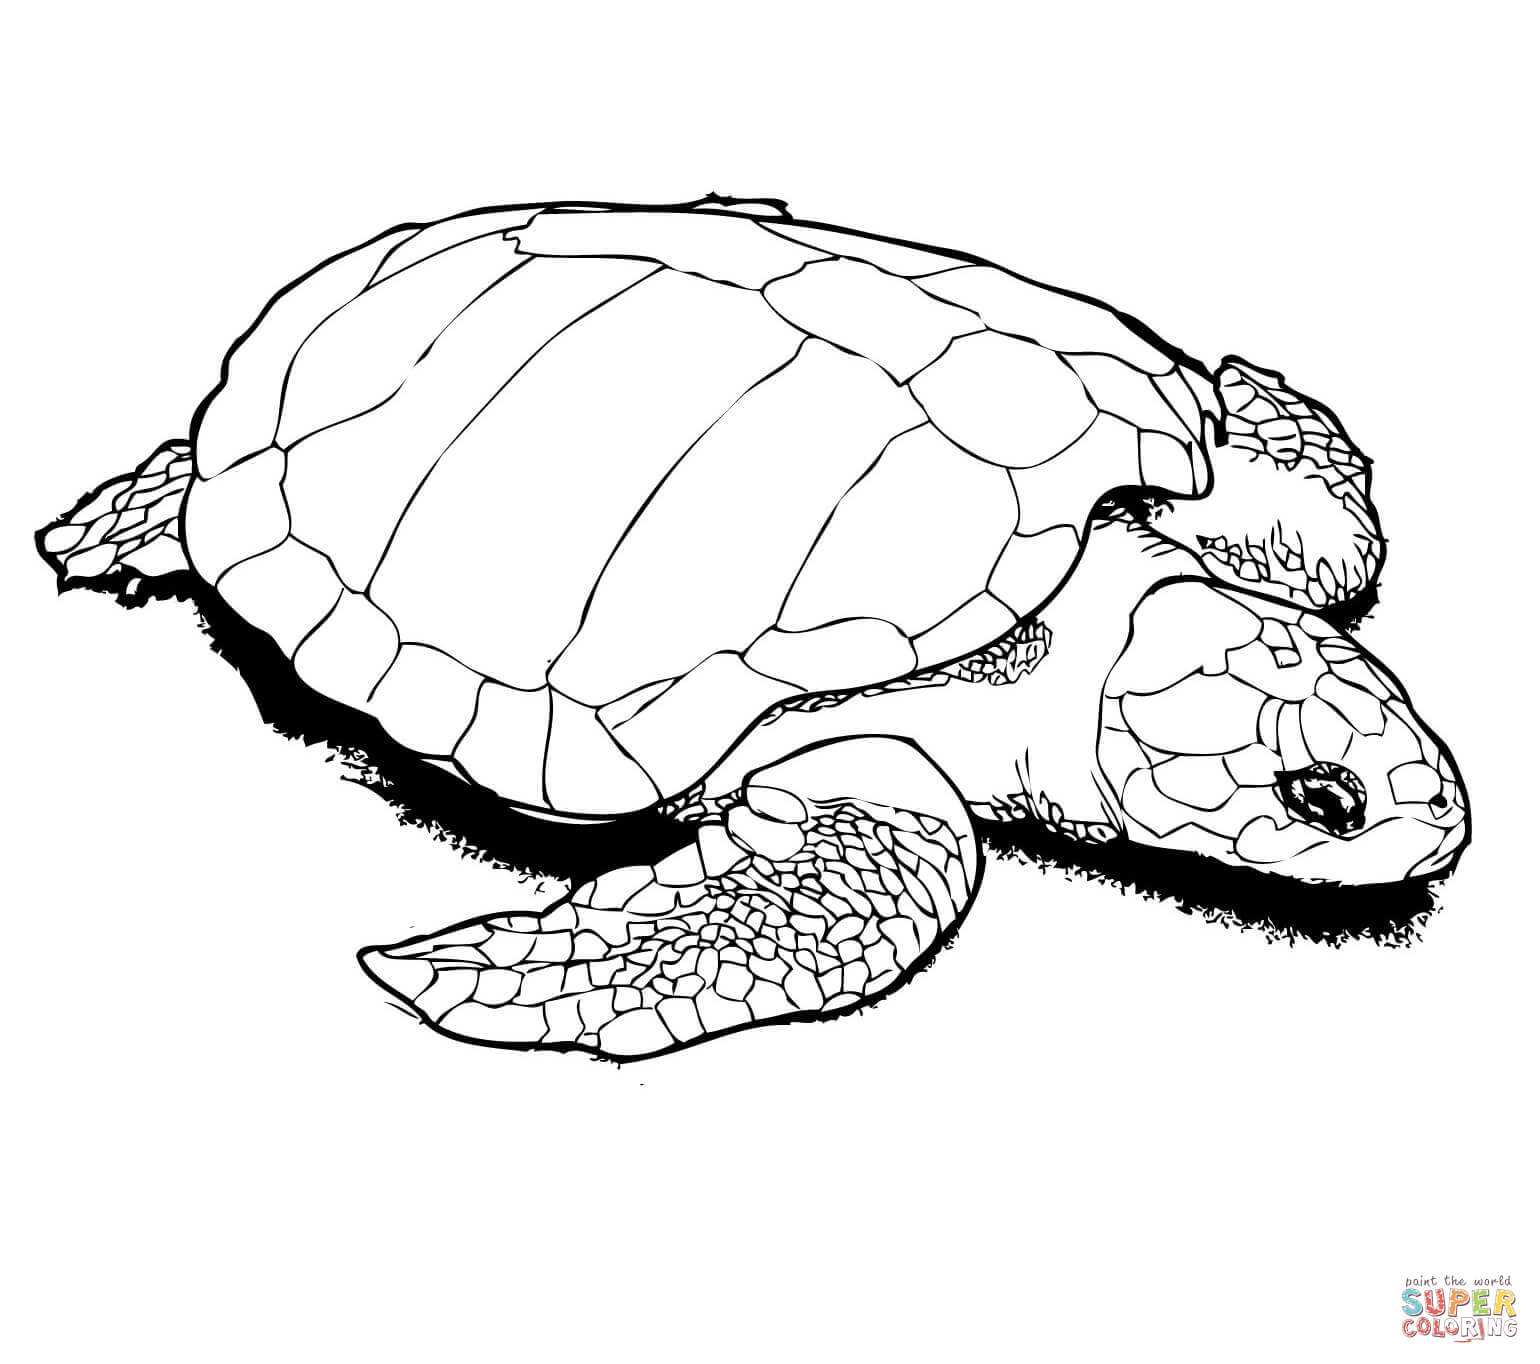 sea turtle coloring pages top 10 free printable cute sea turtle coloring pages online coloring turtle pages sea